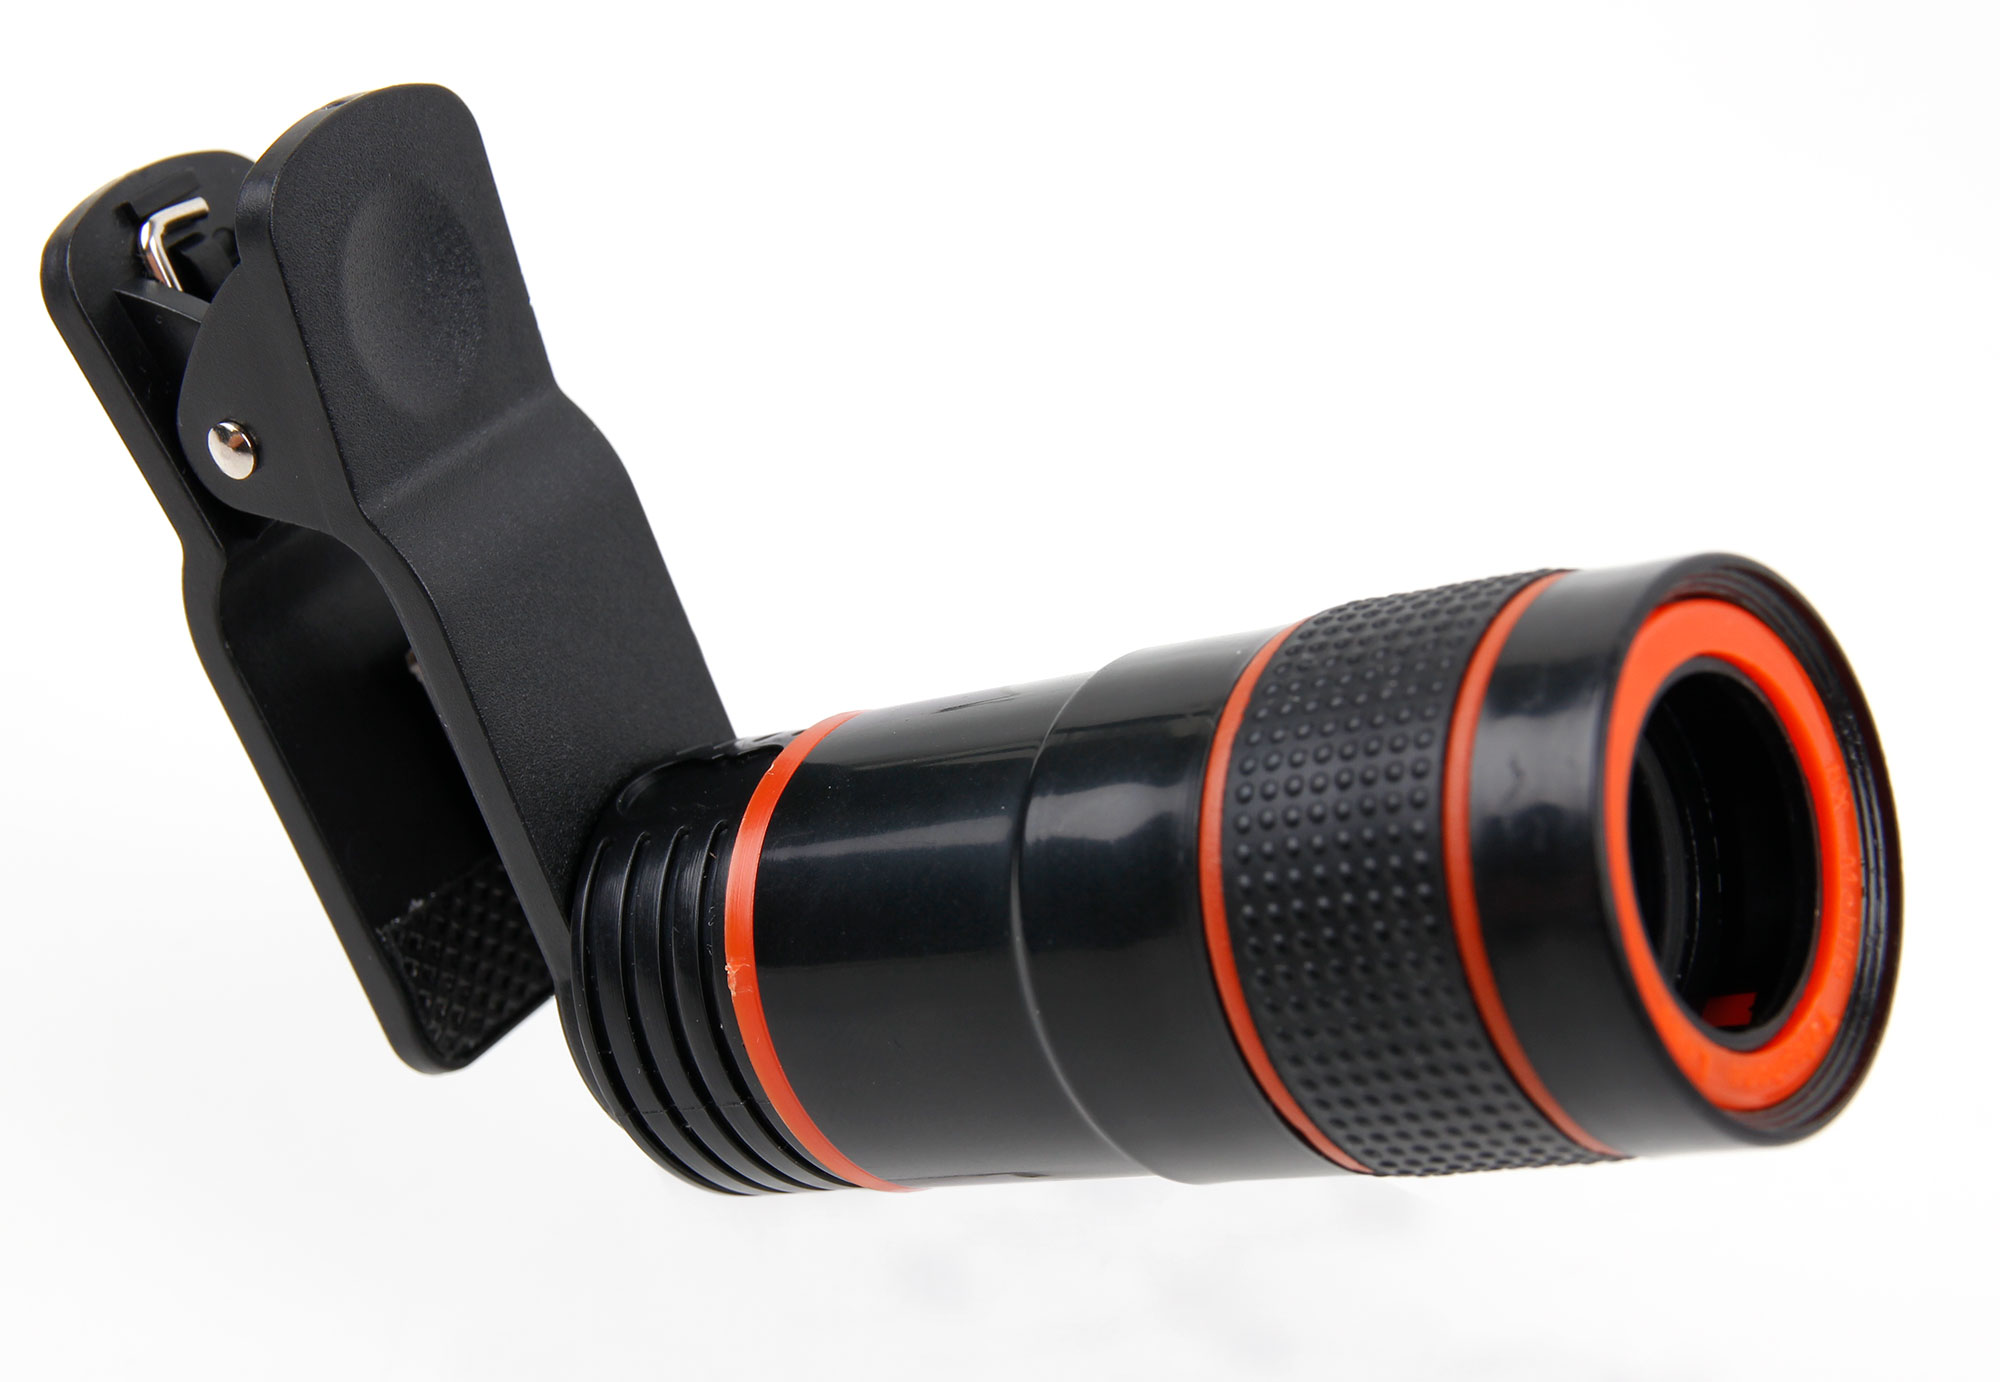 Details about Mini Telephoto Zoom Lens Clip Kit For Full Apple iPhone /  iPad Range